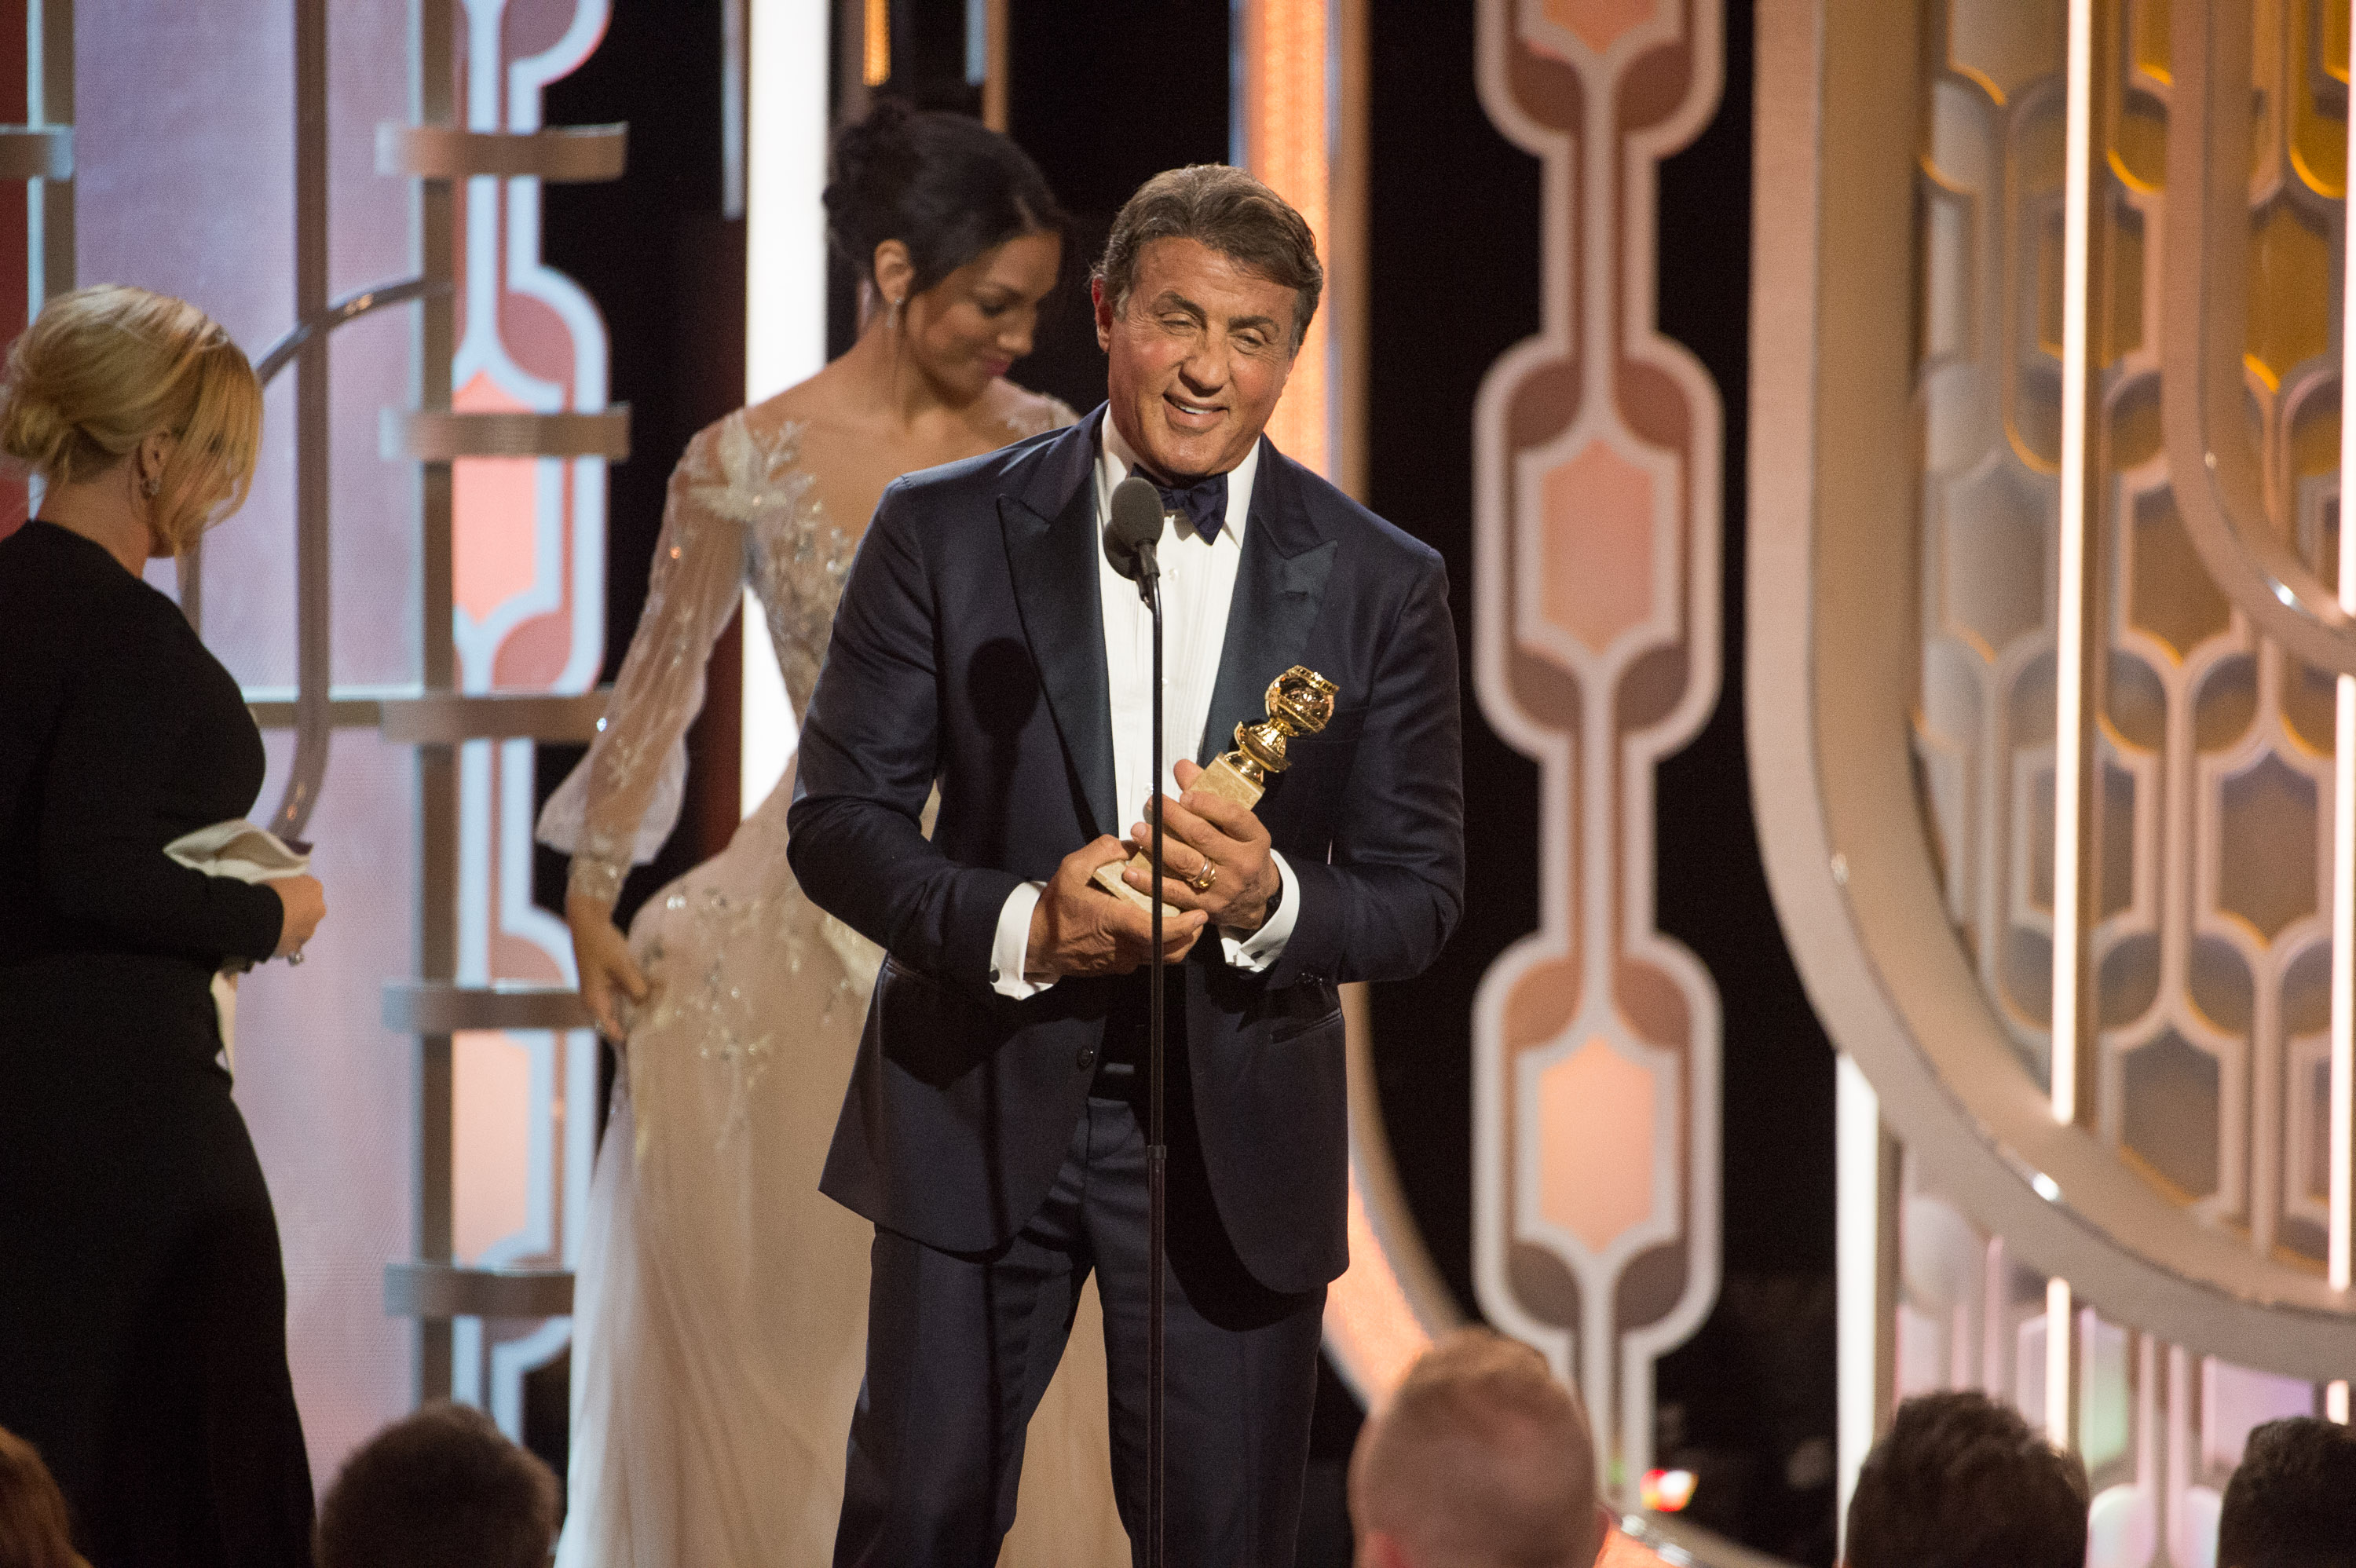 """Sylvester Stallone accepts the Golden Globe Award for BEST PERFORMANCE BY AN ACTOR IN A SUPPORTING ROLE IN A MOTION PICTURE for his role in """"Creed"""" at the 73rd Annual Golden Globe Awards at the Beverly Hilton in Beverly Hills, CA on Sunday, January 10, Courtesy of Hollywood Foreign Press Association"""